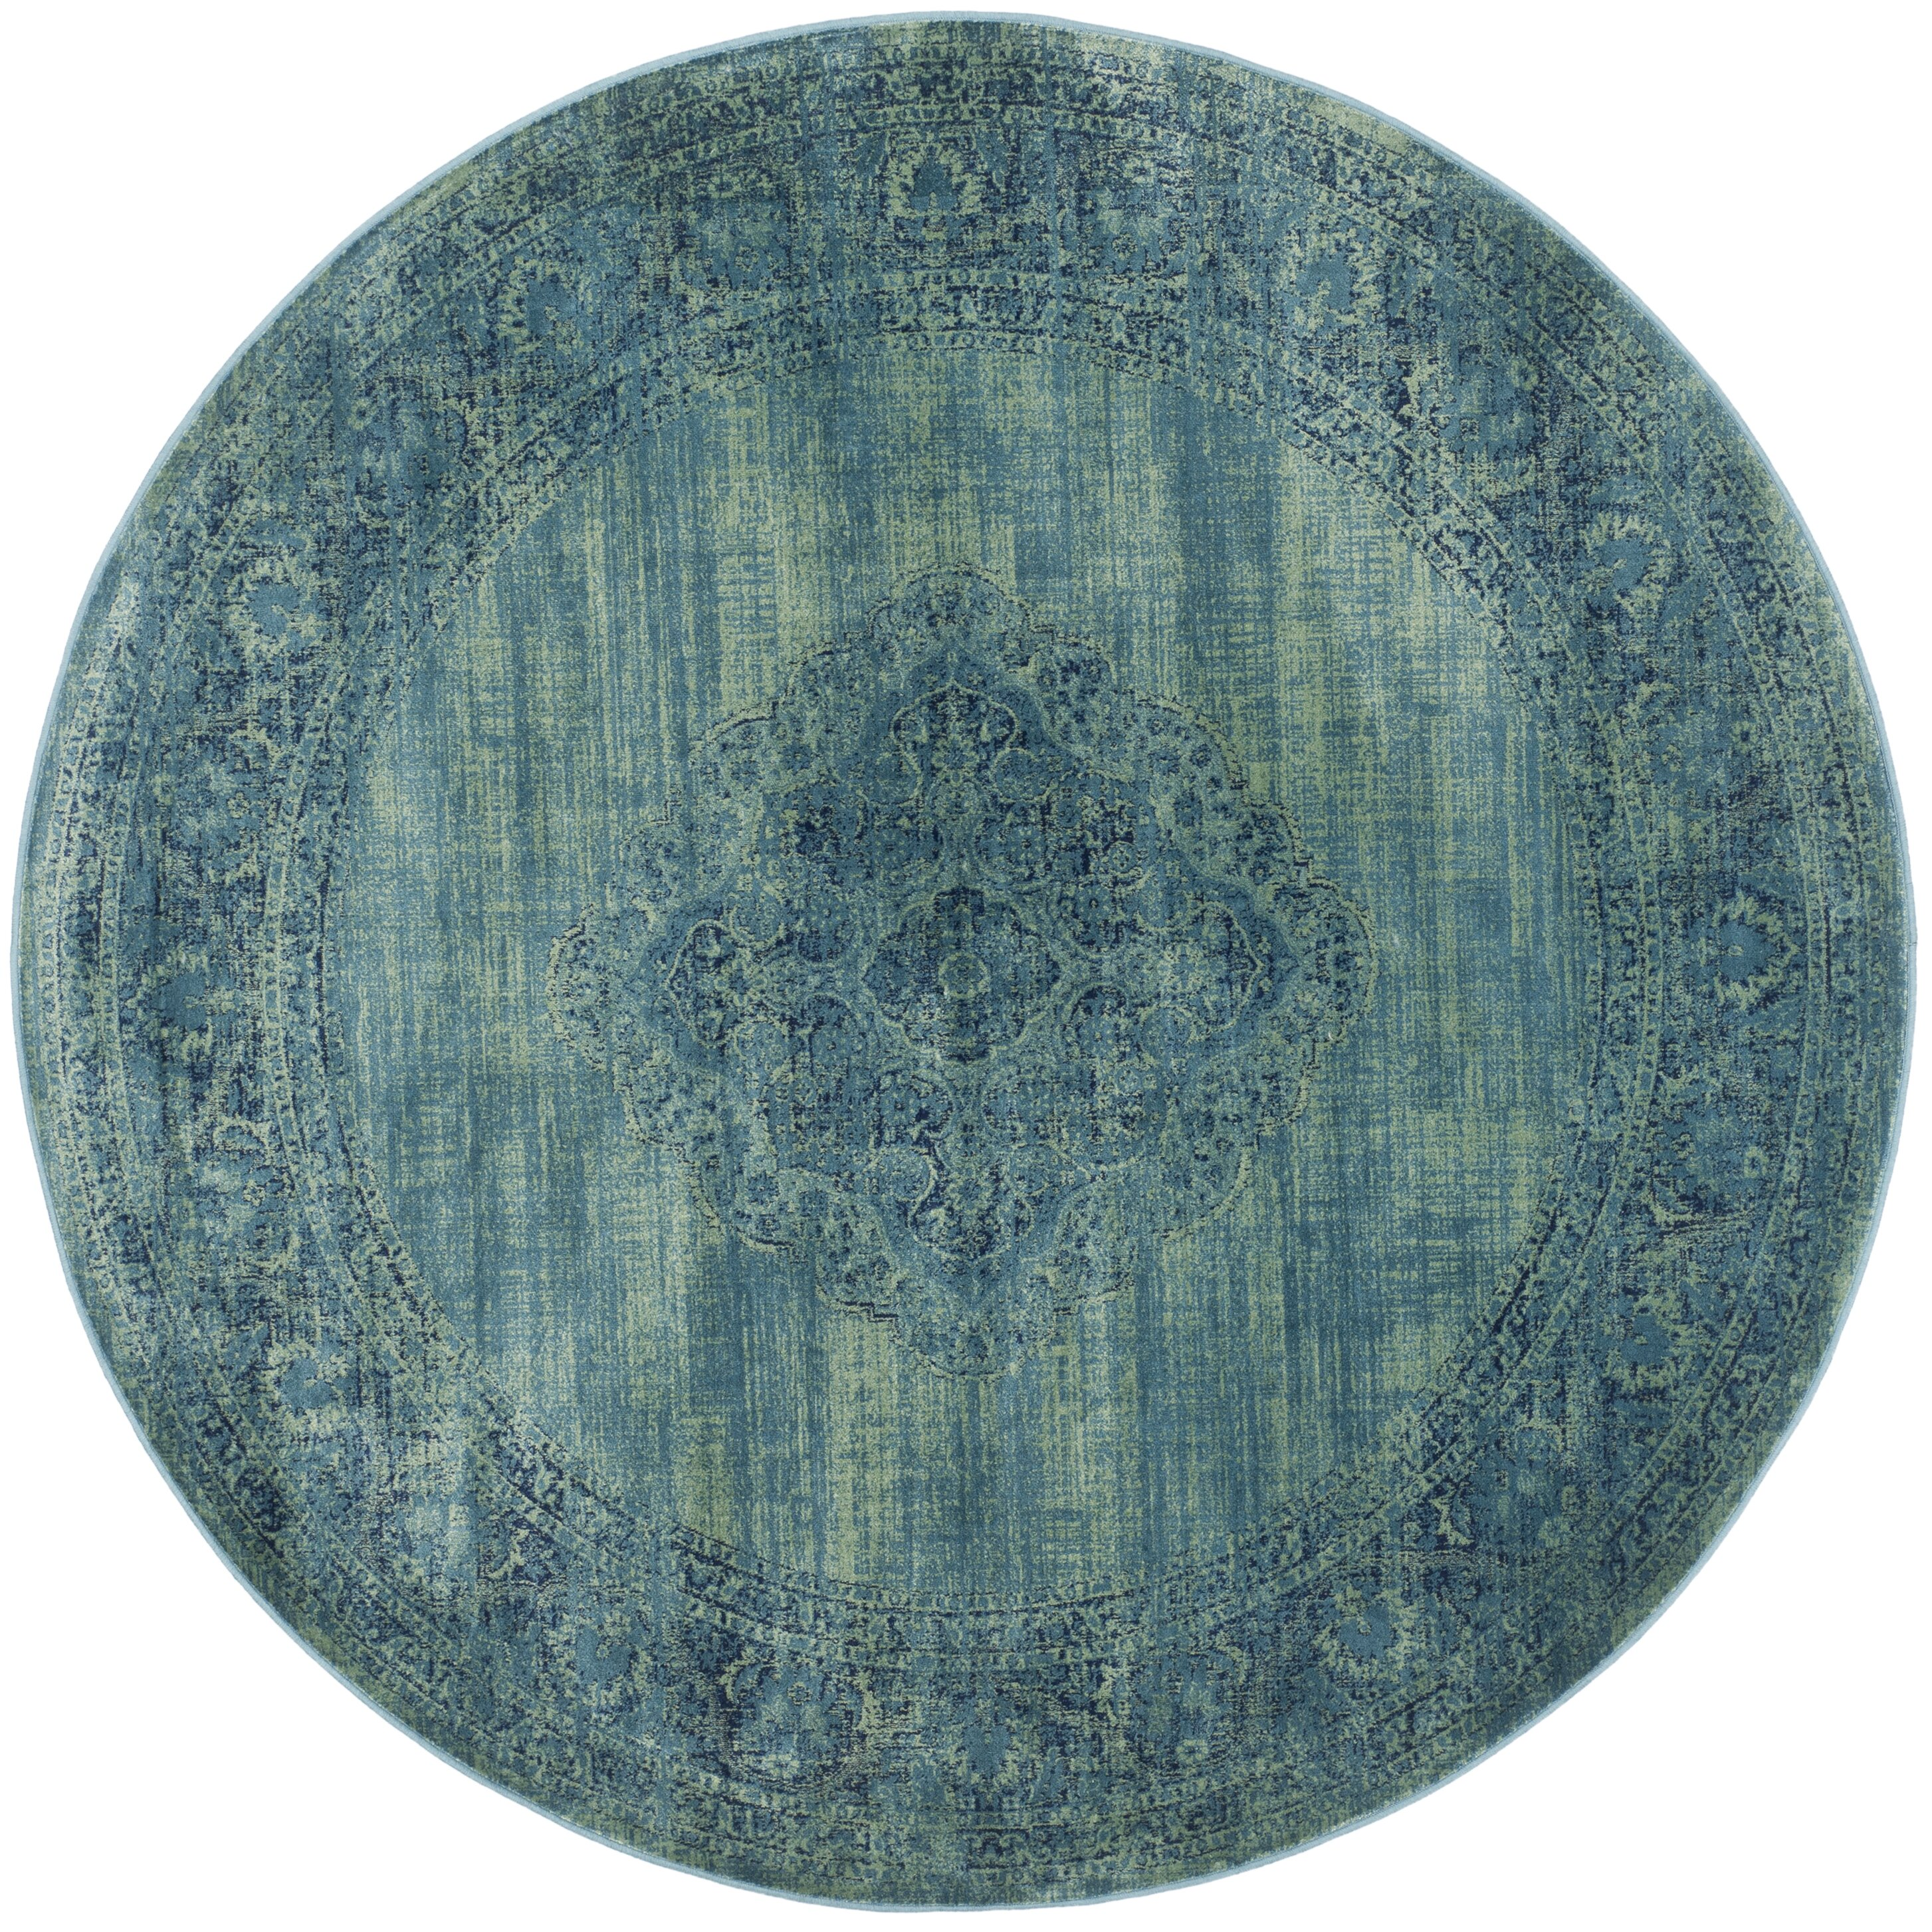 Safavieh Vintage Turquoise And Multi Colored Area Rug: Safavieh Vintage Turquoise Area Rug & Reviews